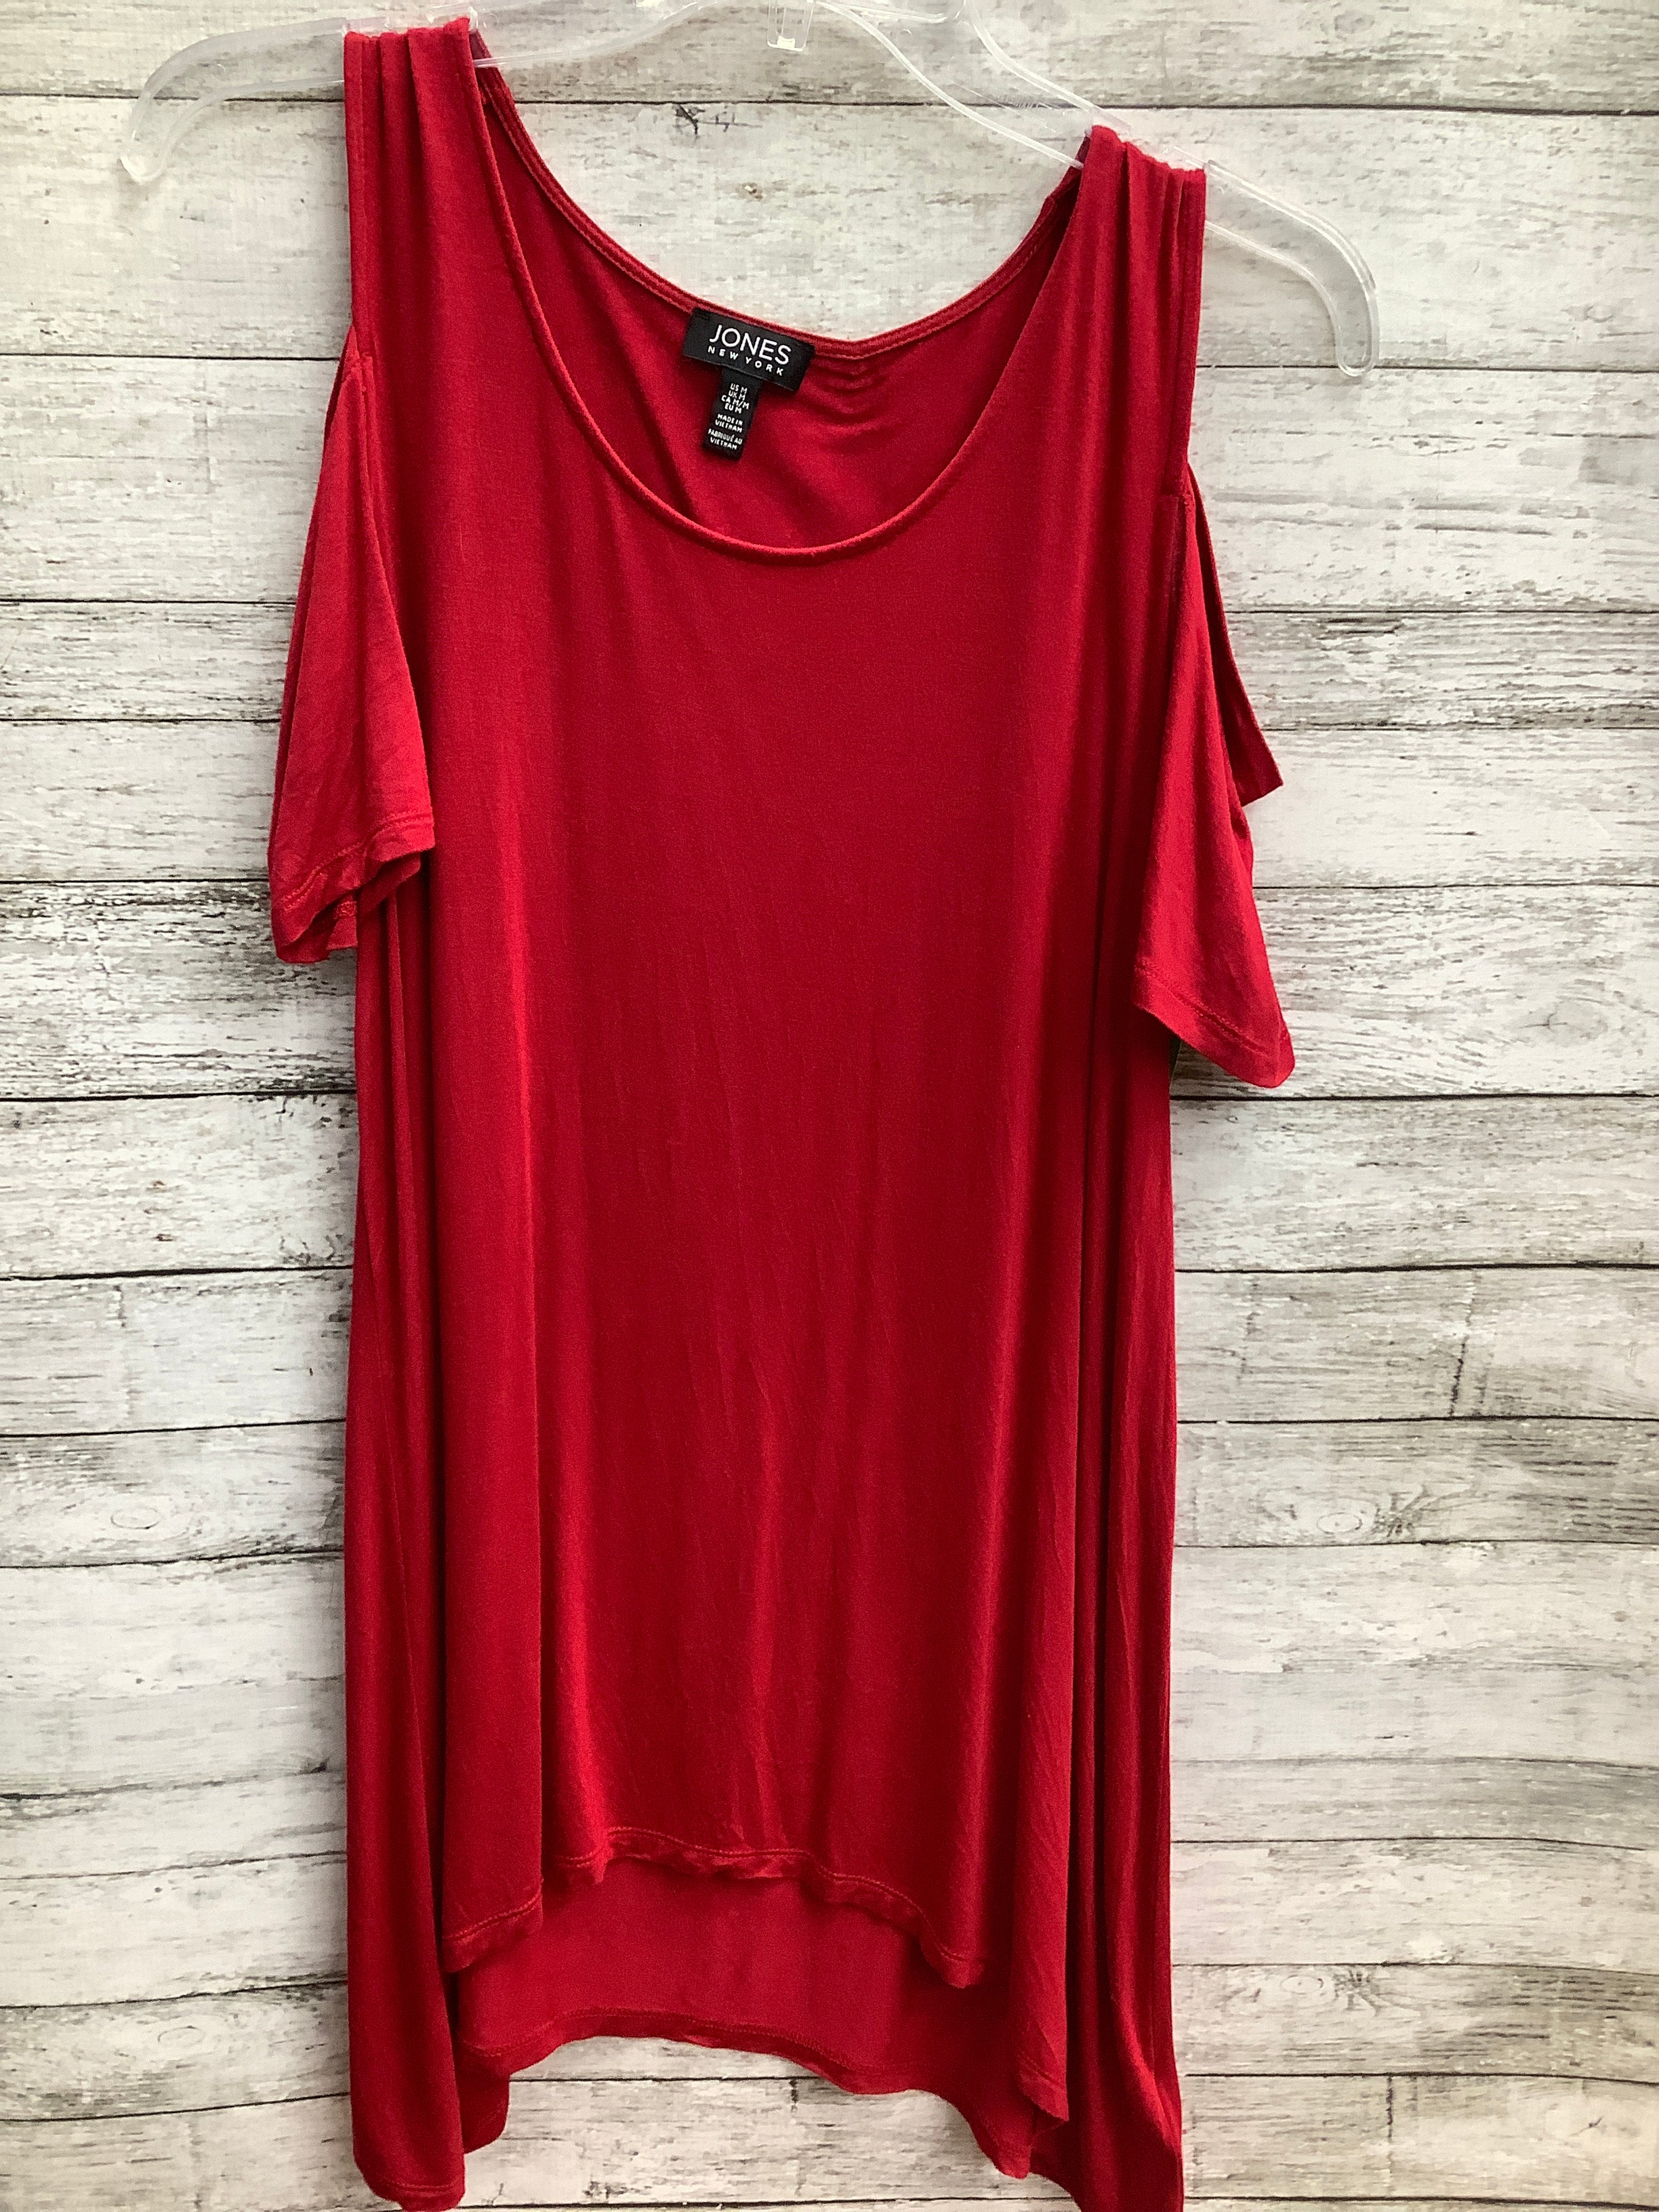 Primary Photo - brand: jones new york , style: top short sleeve , color: red , size: m , sku: 105-5184-42